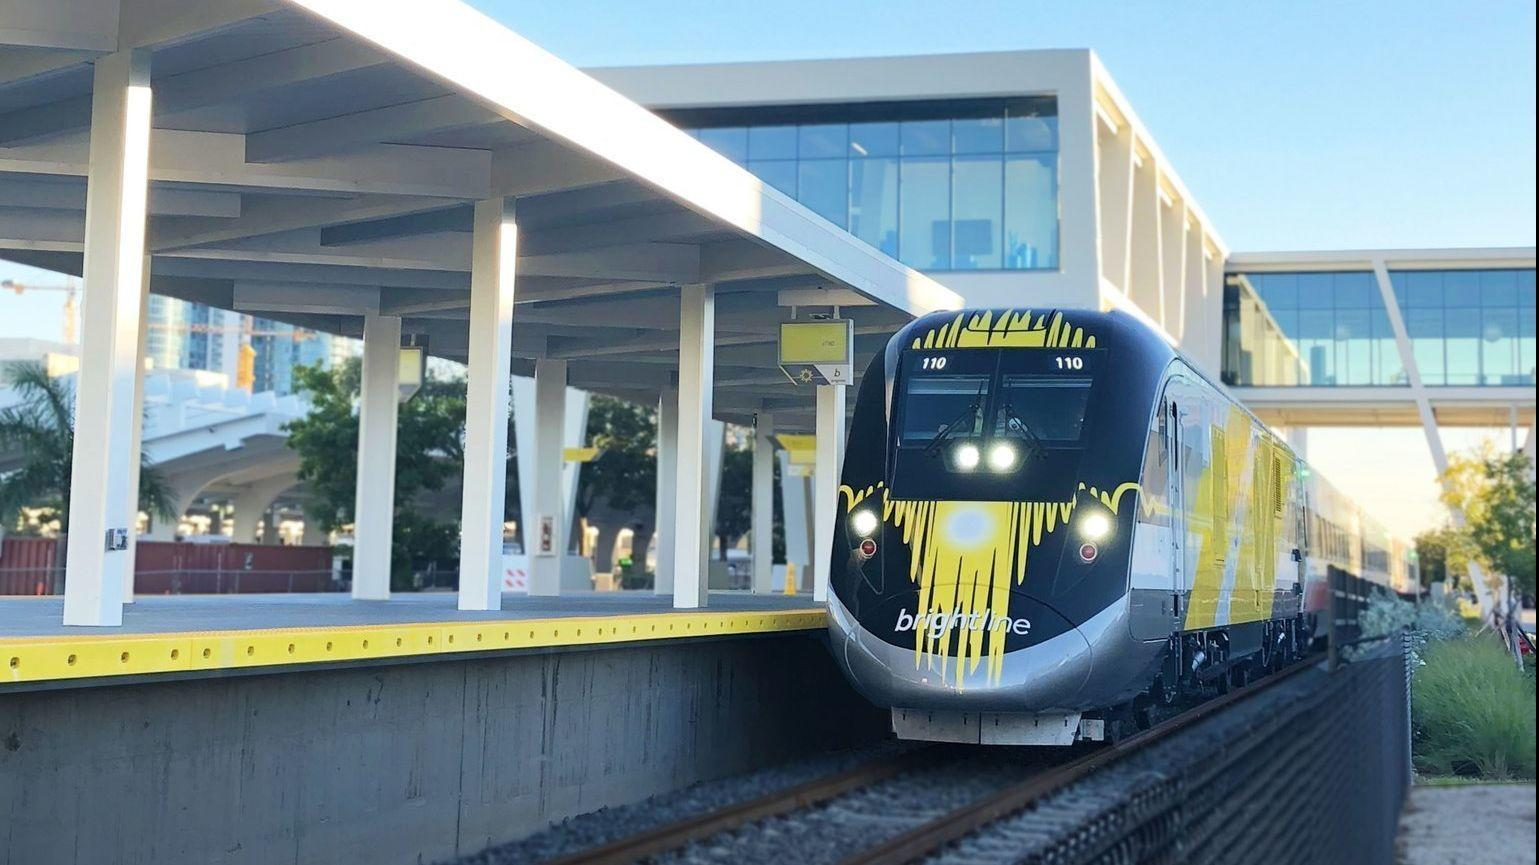 stuart will pursue brightline station and begins considering locations